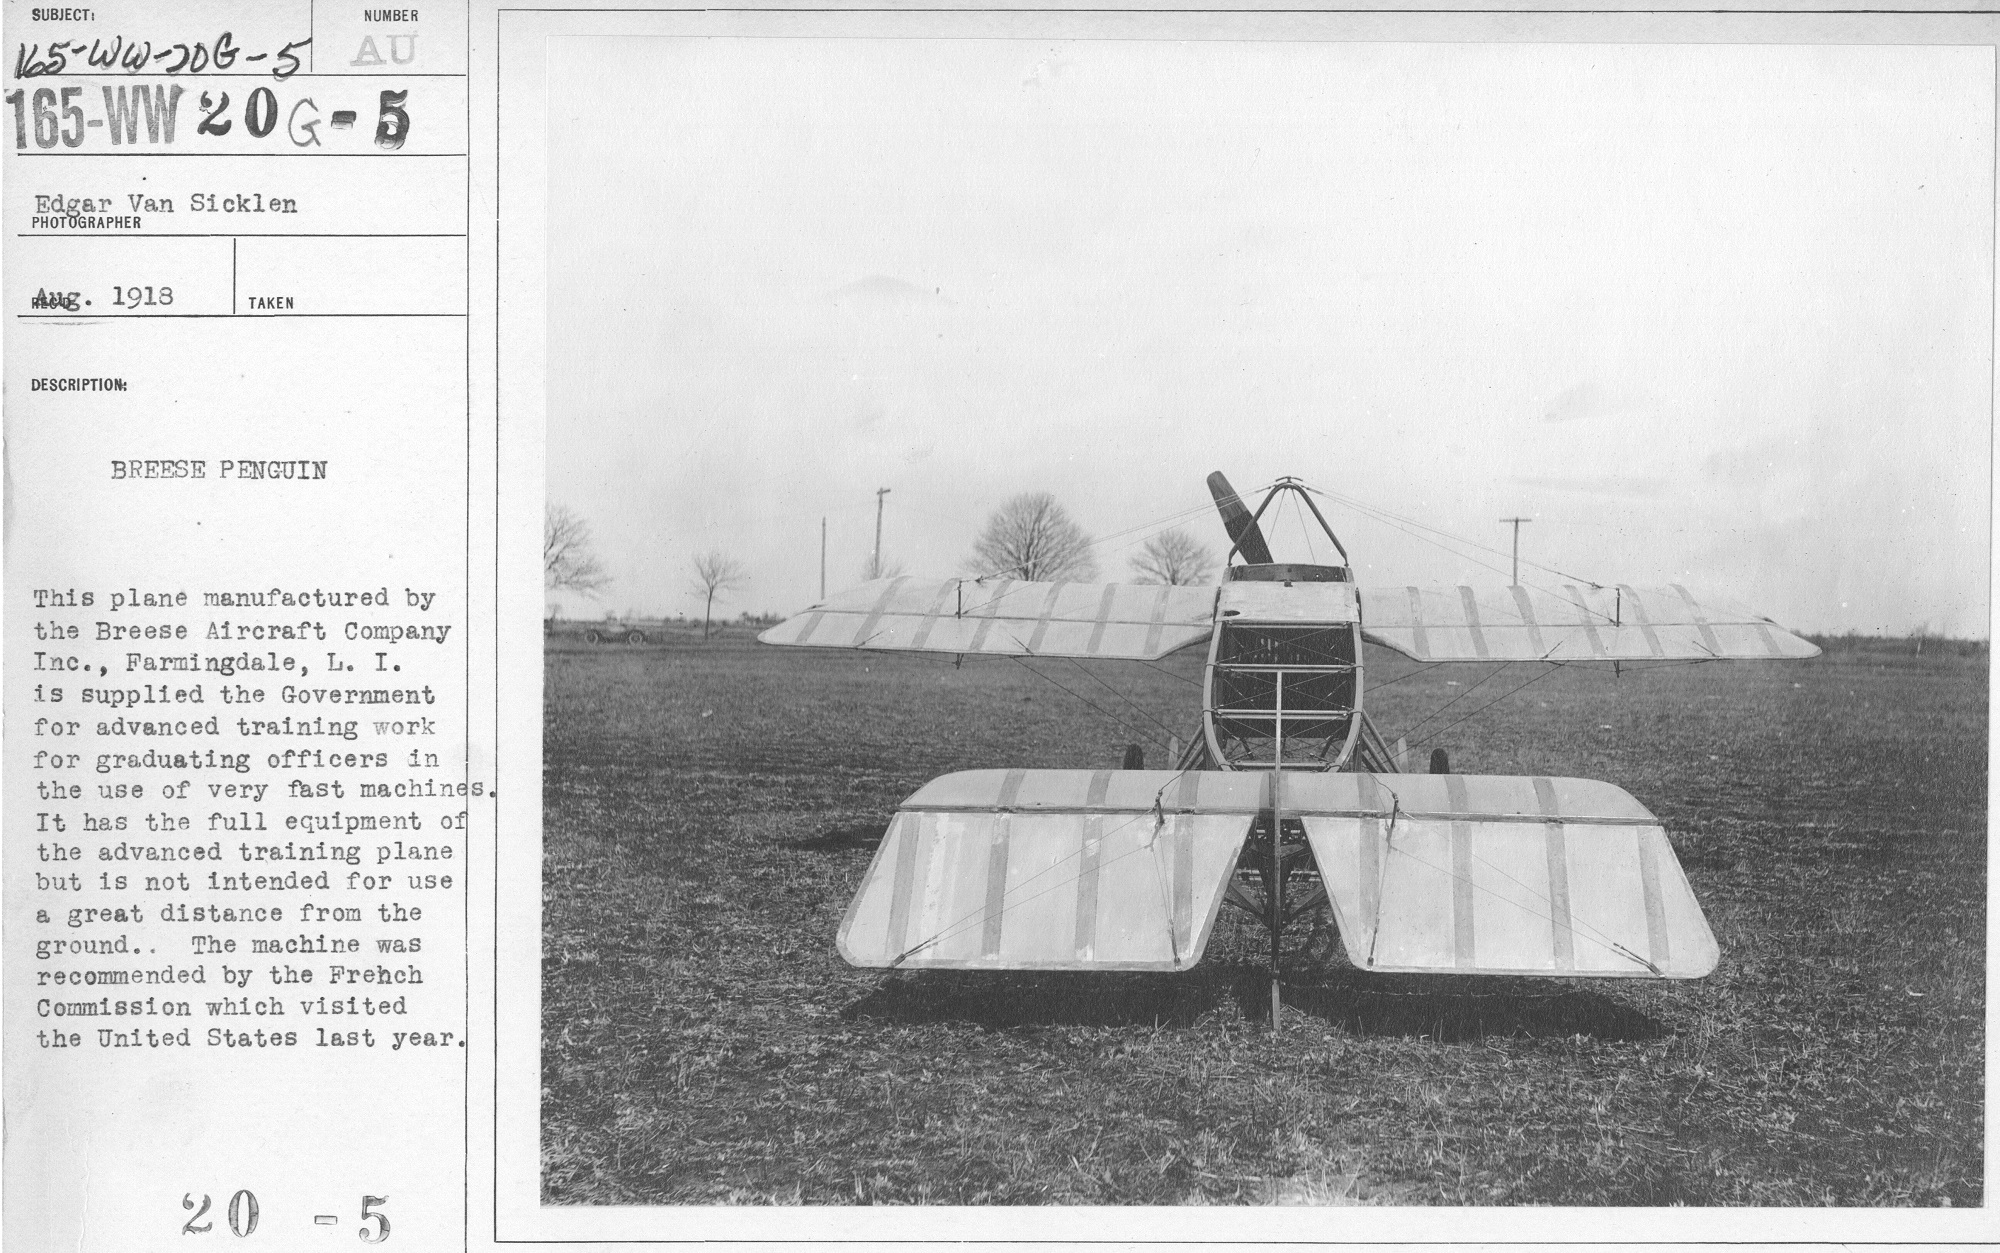 Image of plane and caption.